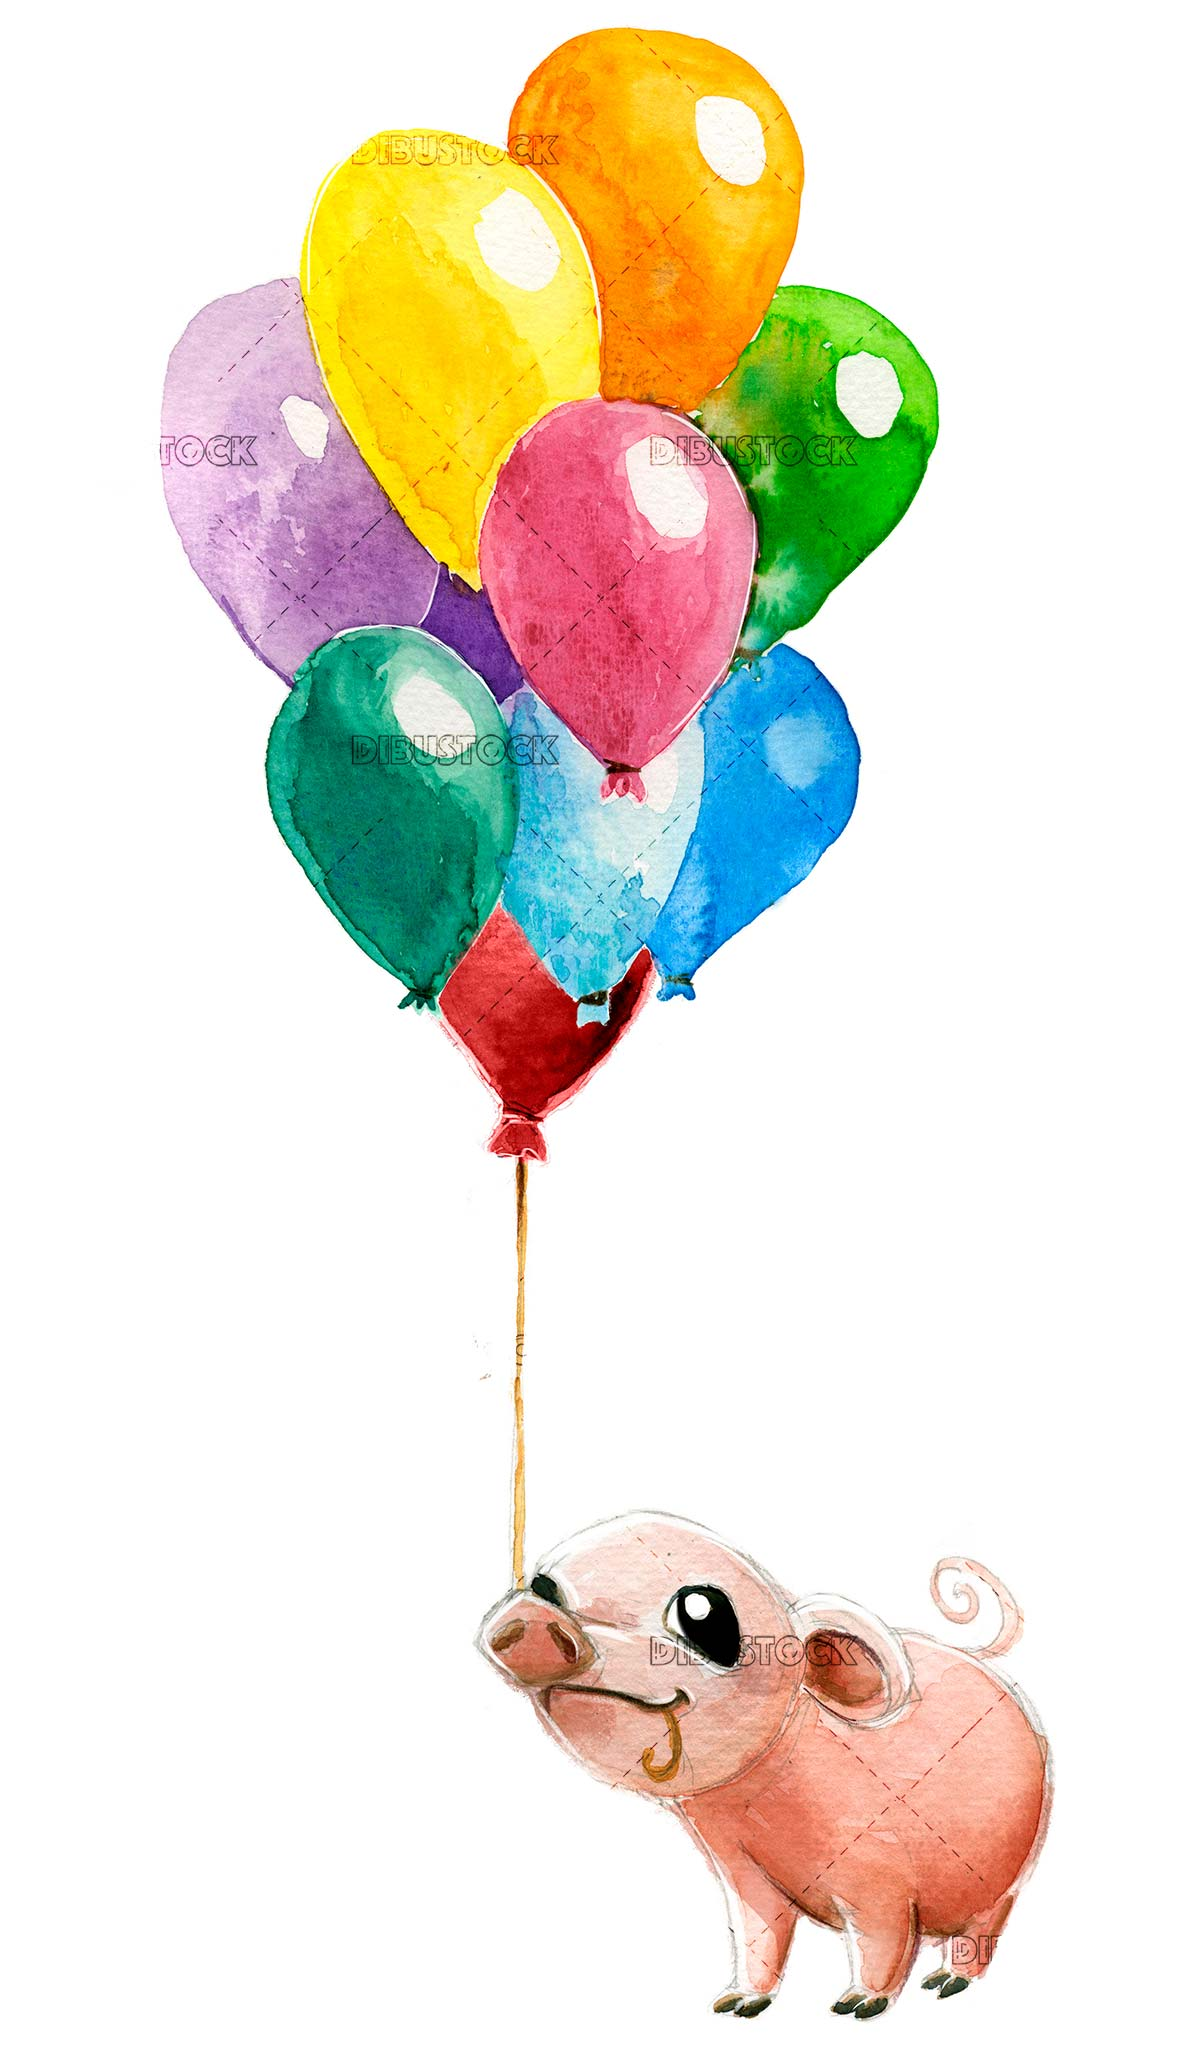 Pig with colored balloons